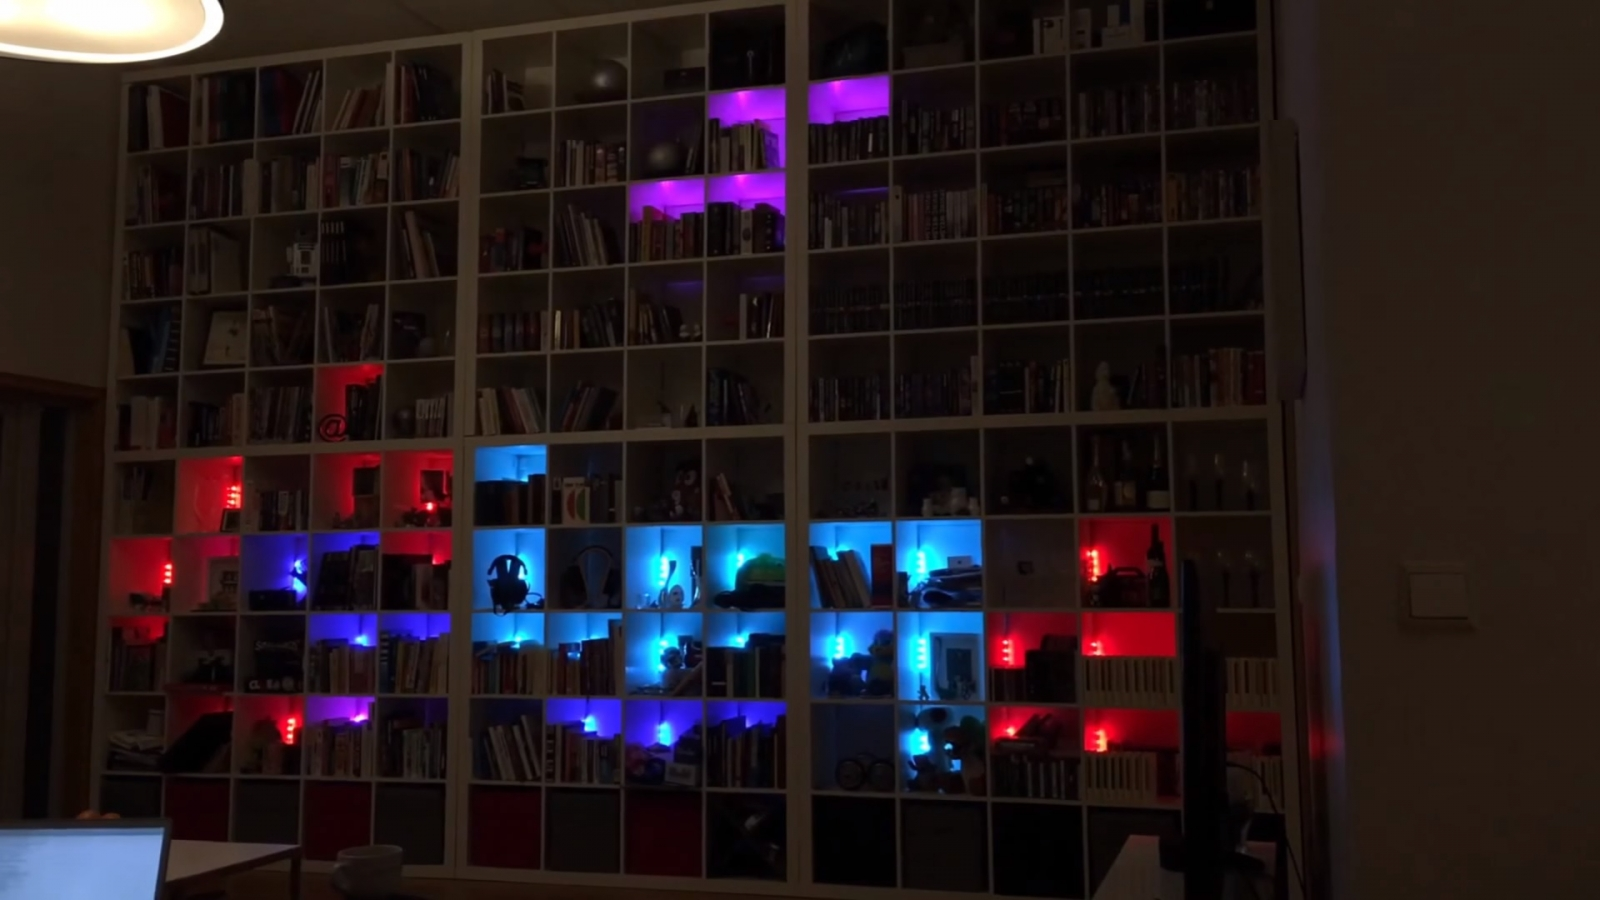 Ikea bookcase programmed to play Tetris